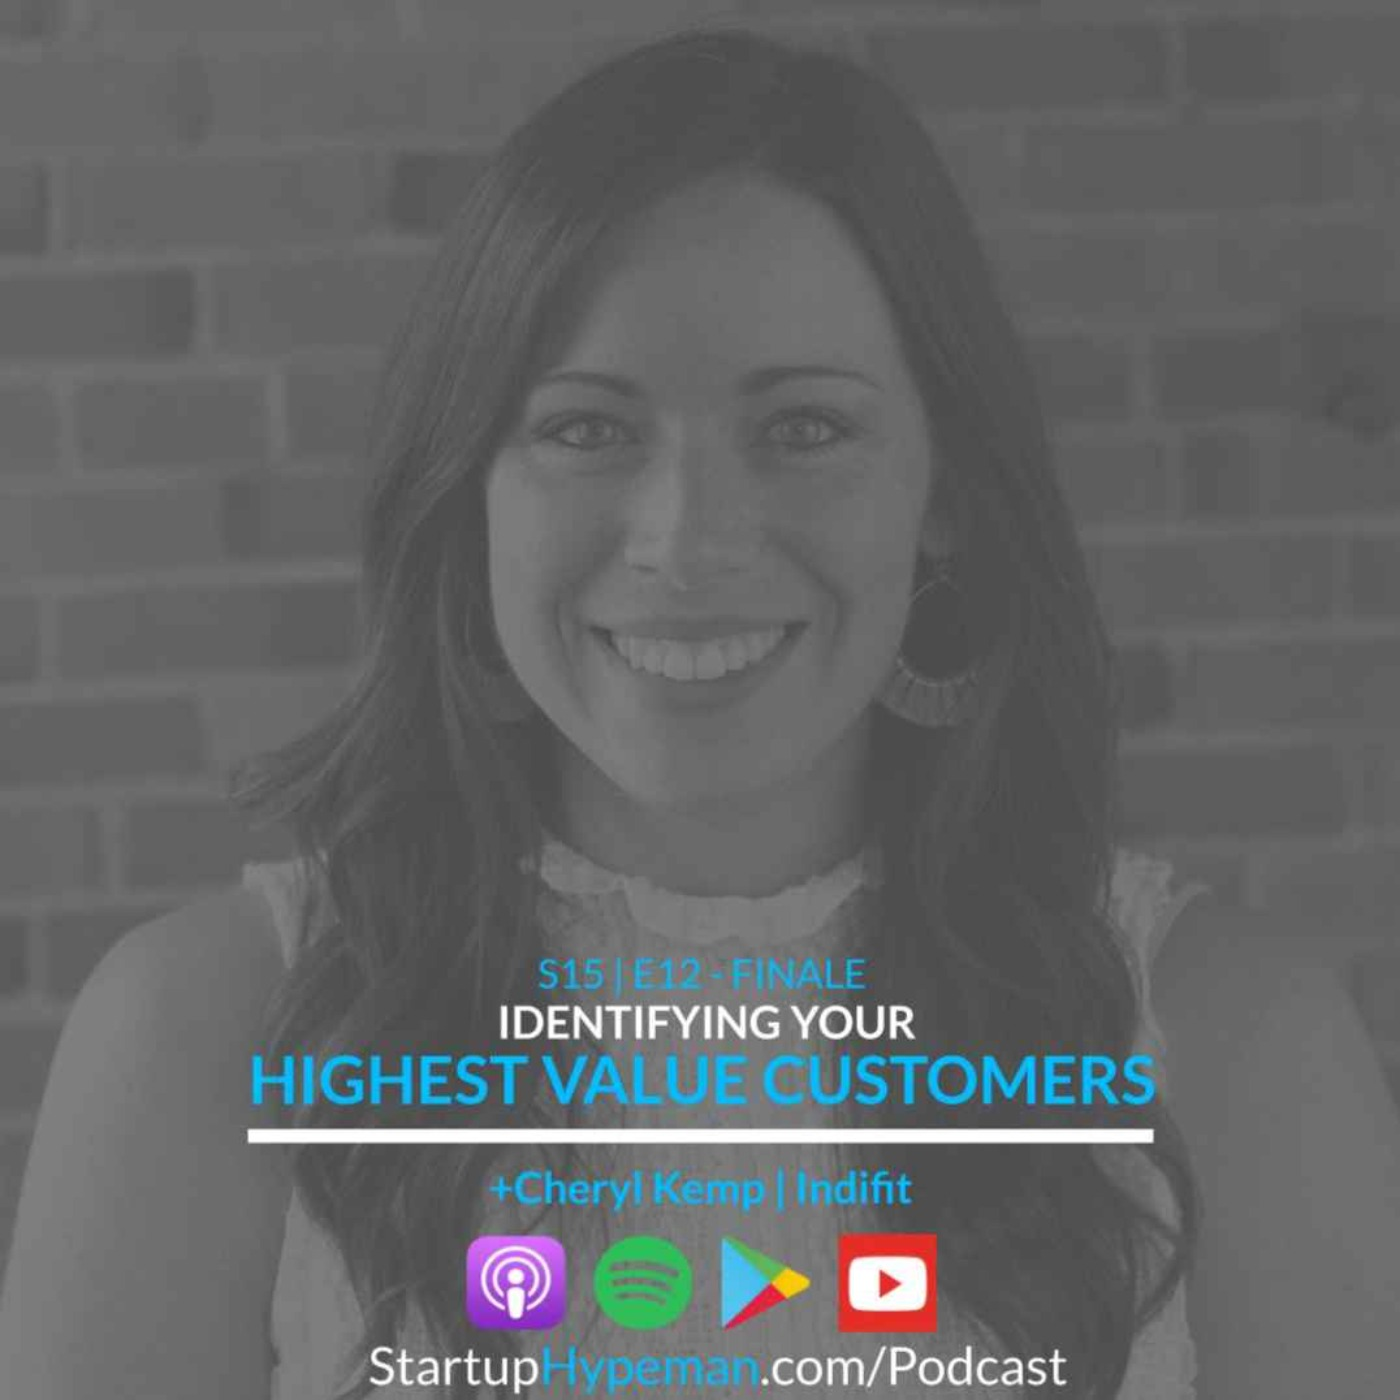 S15E12- Identifying Your Highest Value Customers with Indifit Chief Exercise Officer Cheryl Kemp